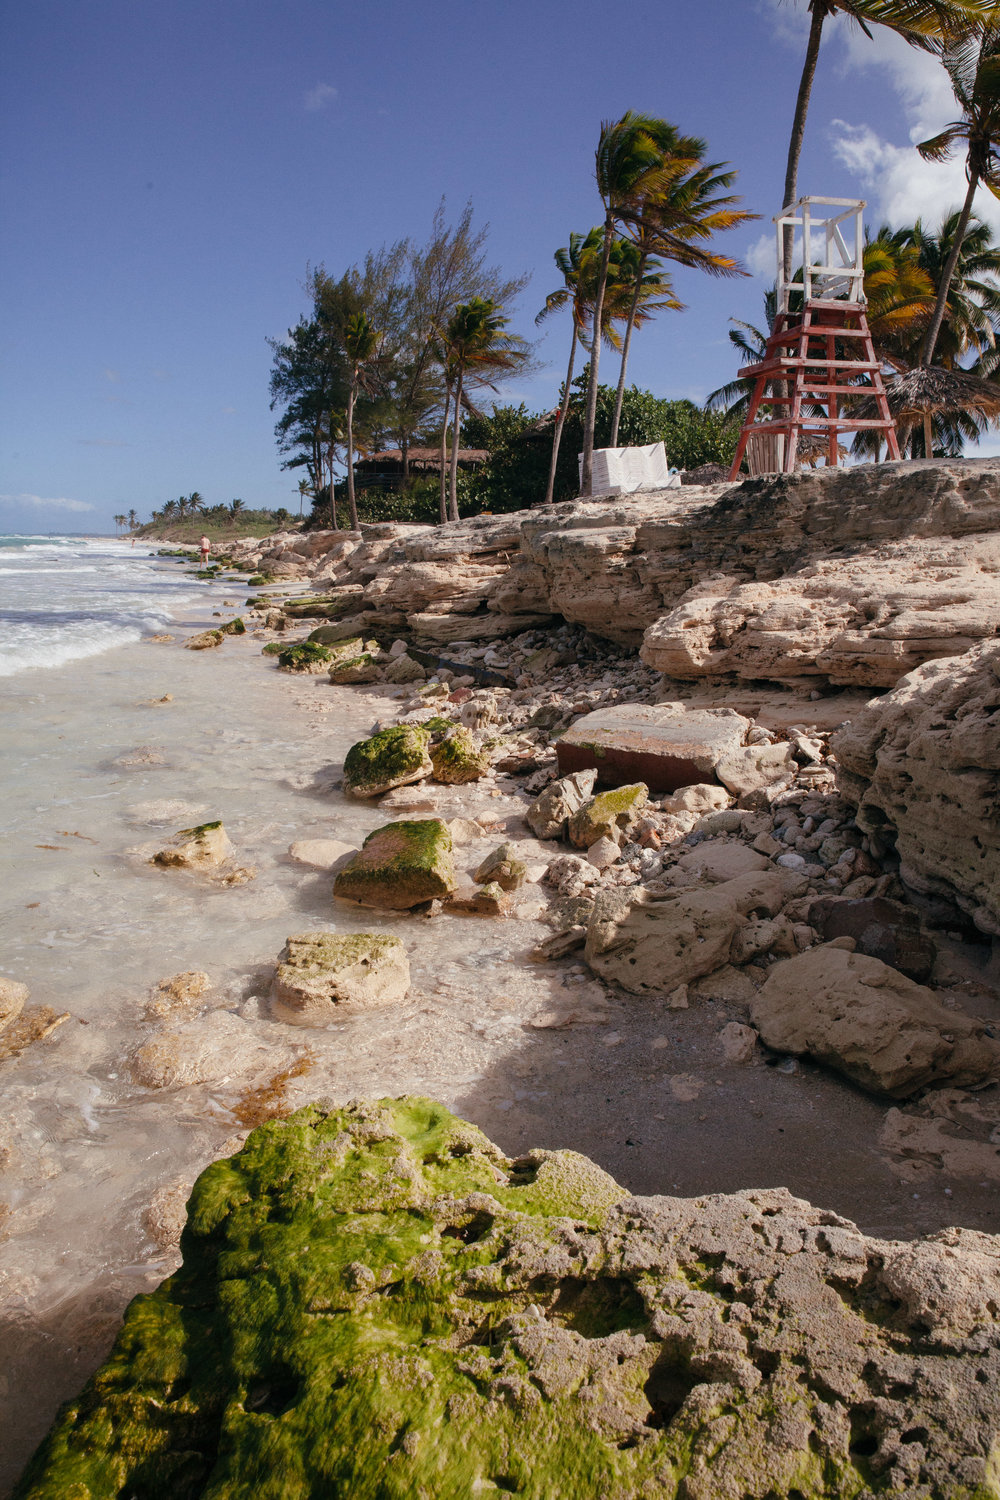 A deteriorating beach and seaside resort, outside of Havana in Cuba.